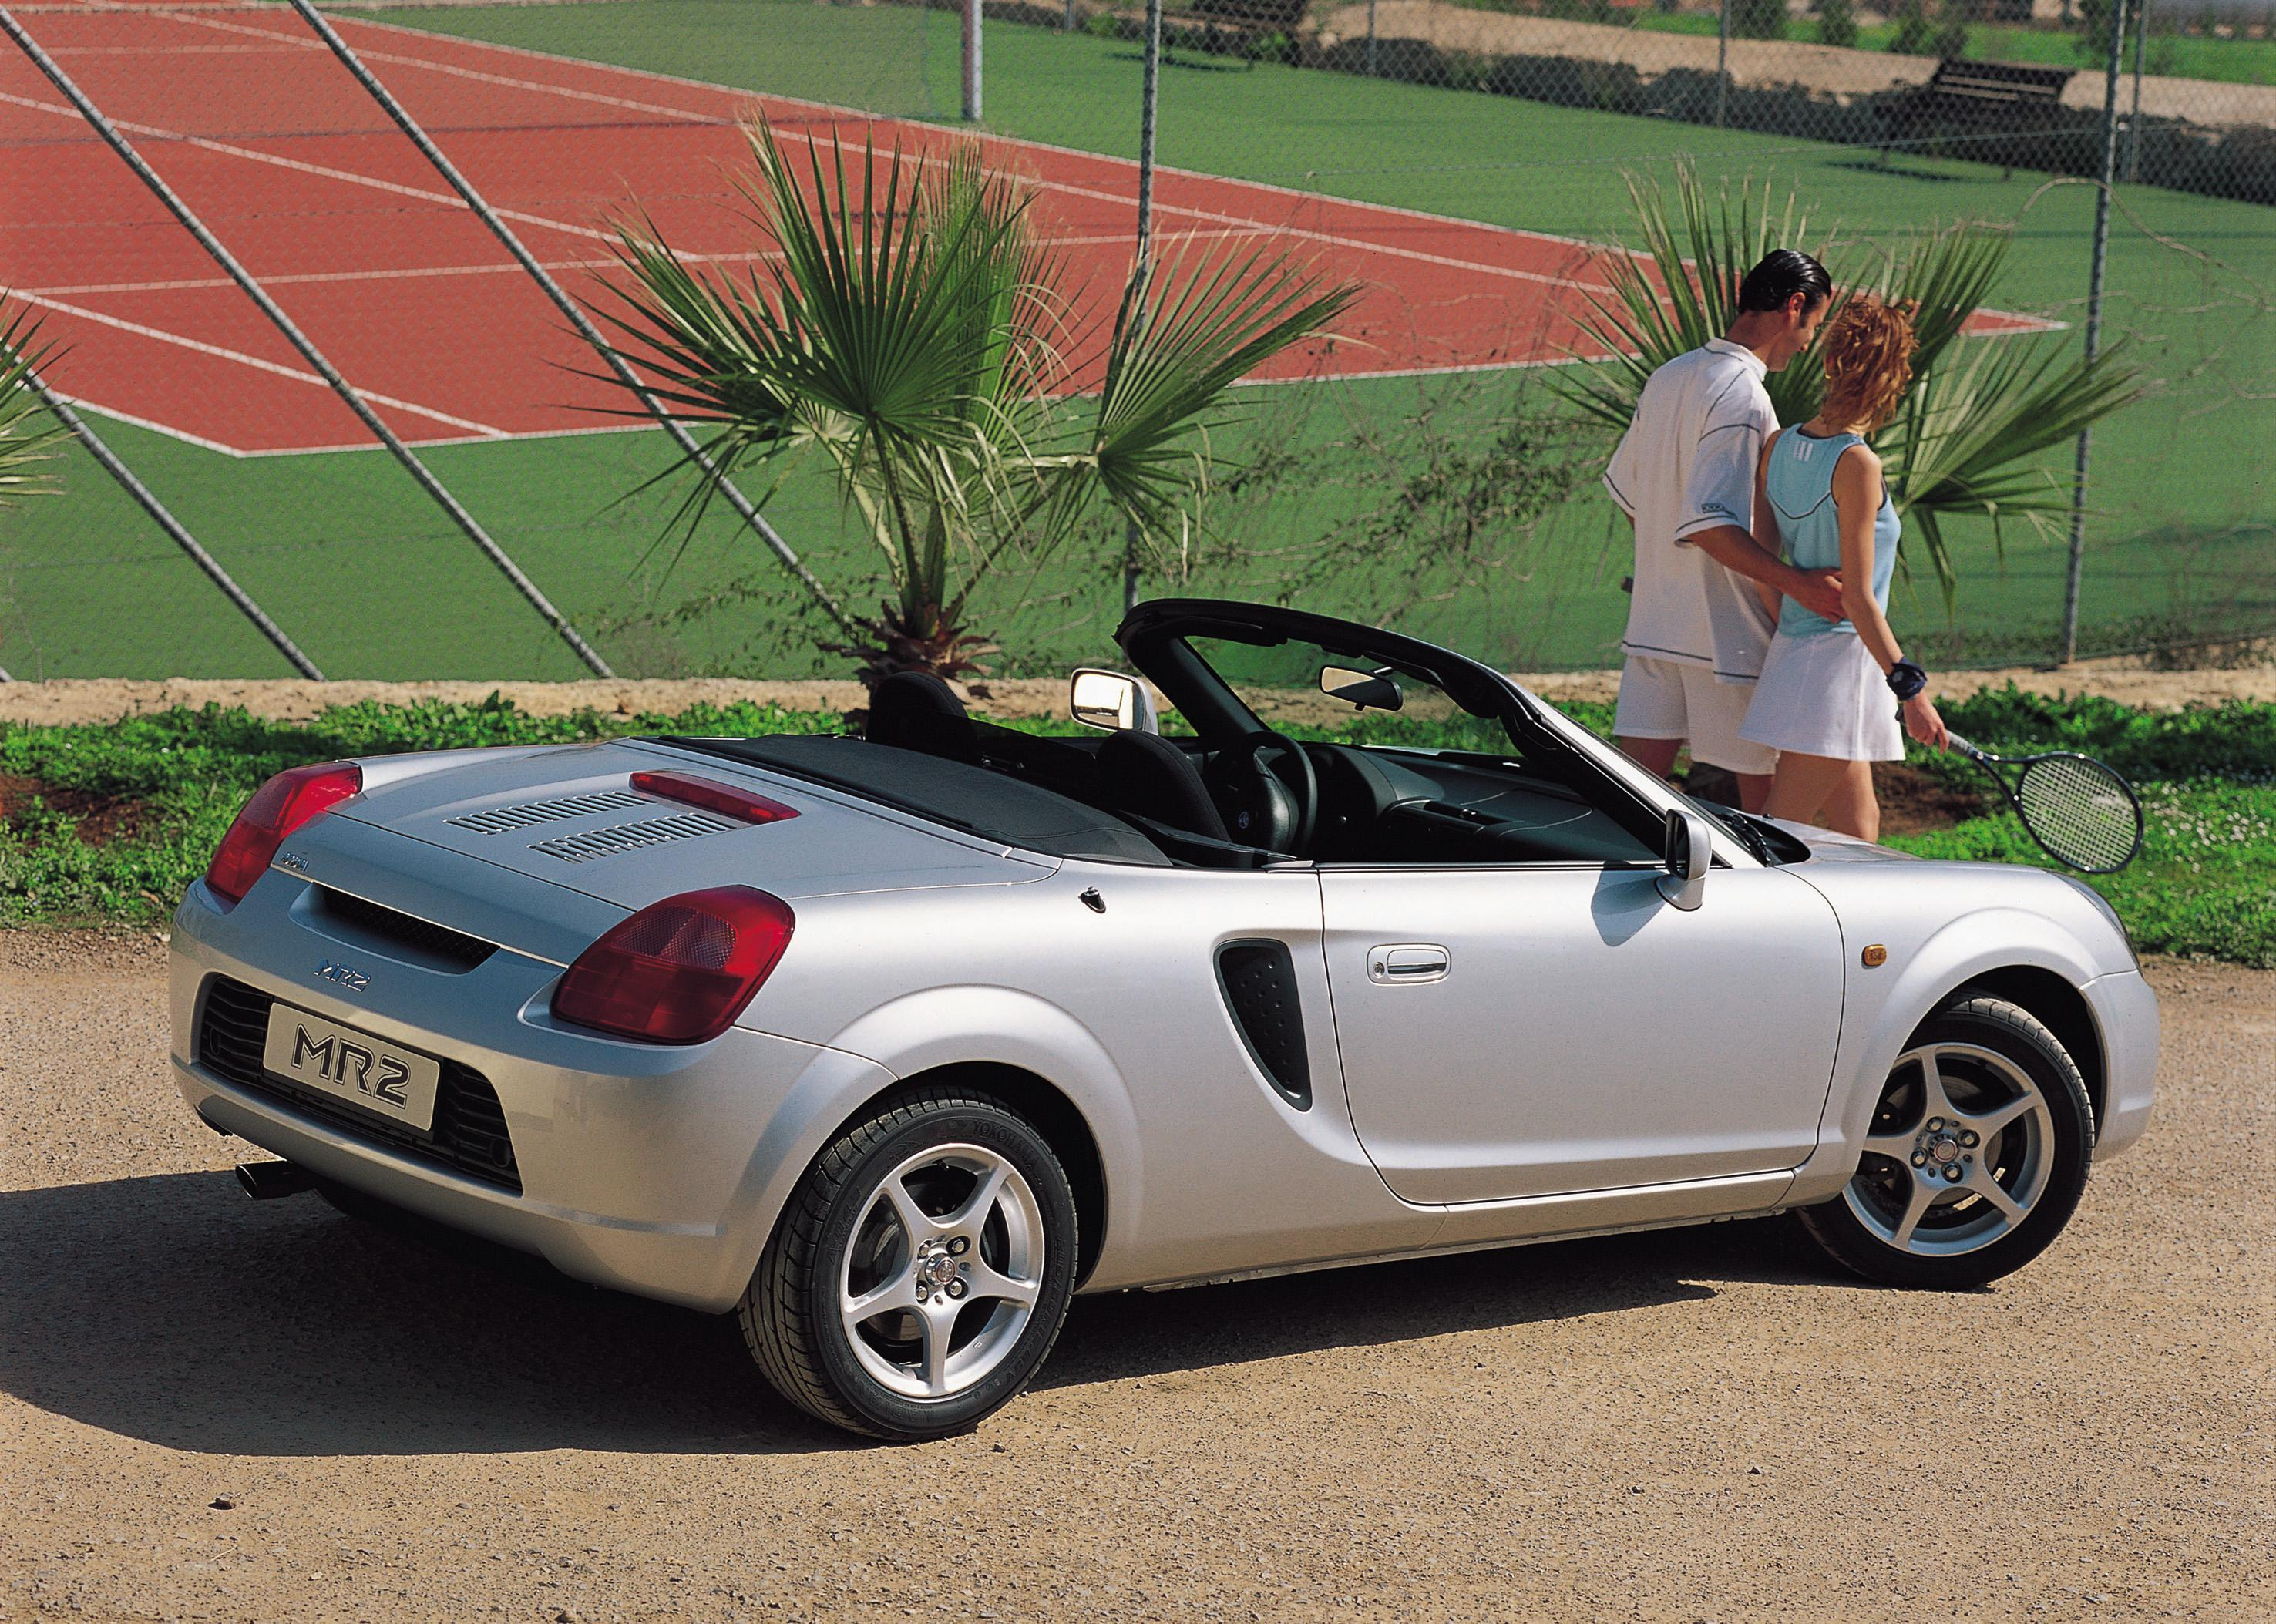 Delicieux 2002 Toyota MR2 Review   Top Speed. »